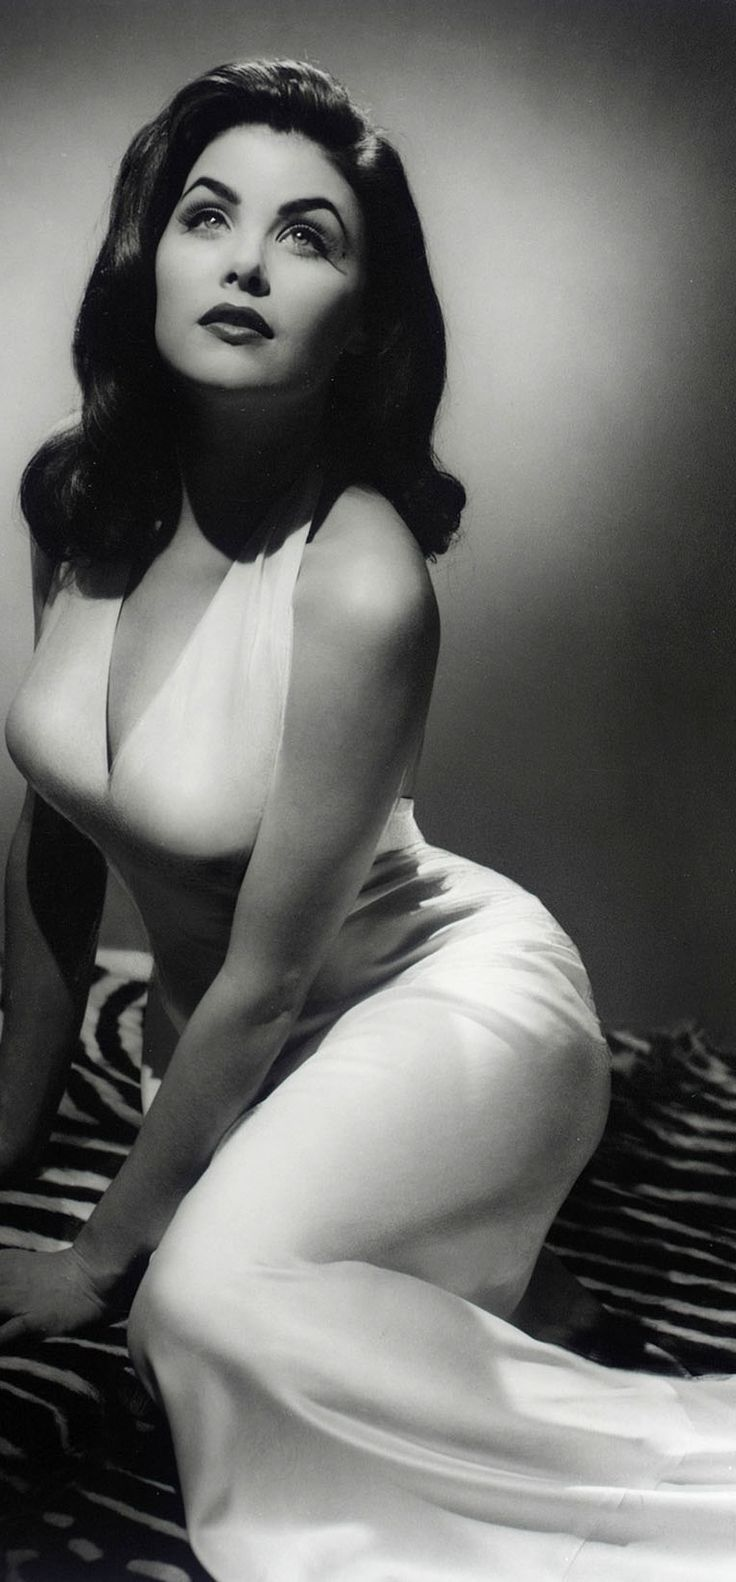 Sherilyn Fenn. One of the most Absolutely Beautiful Women ever.